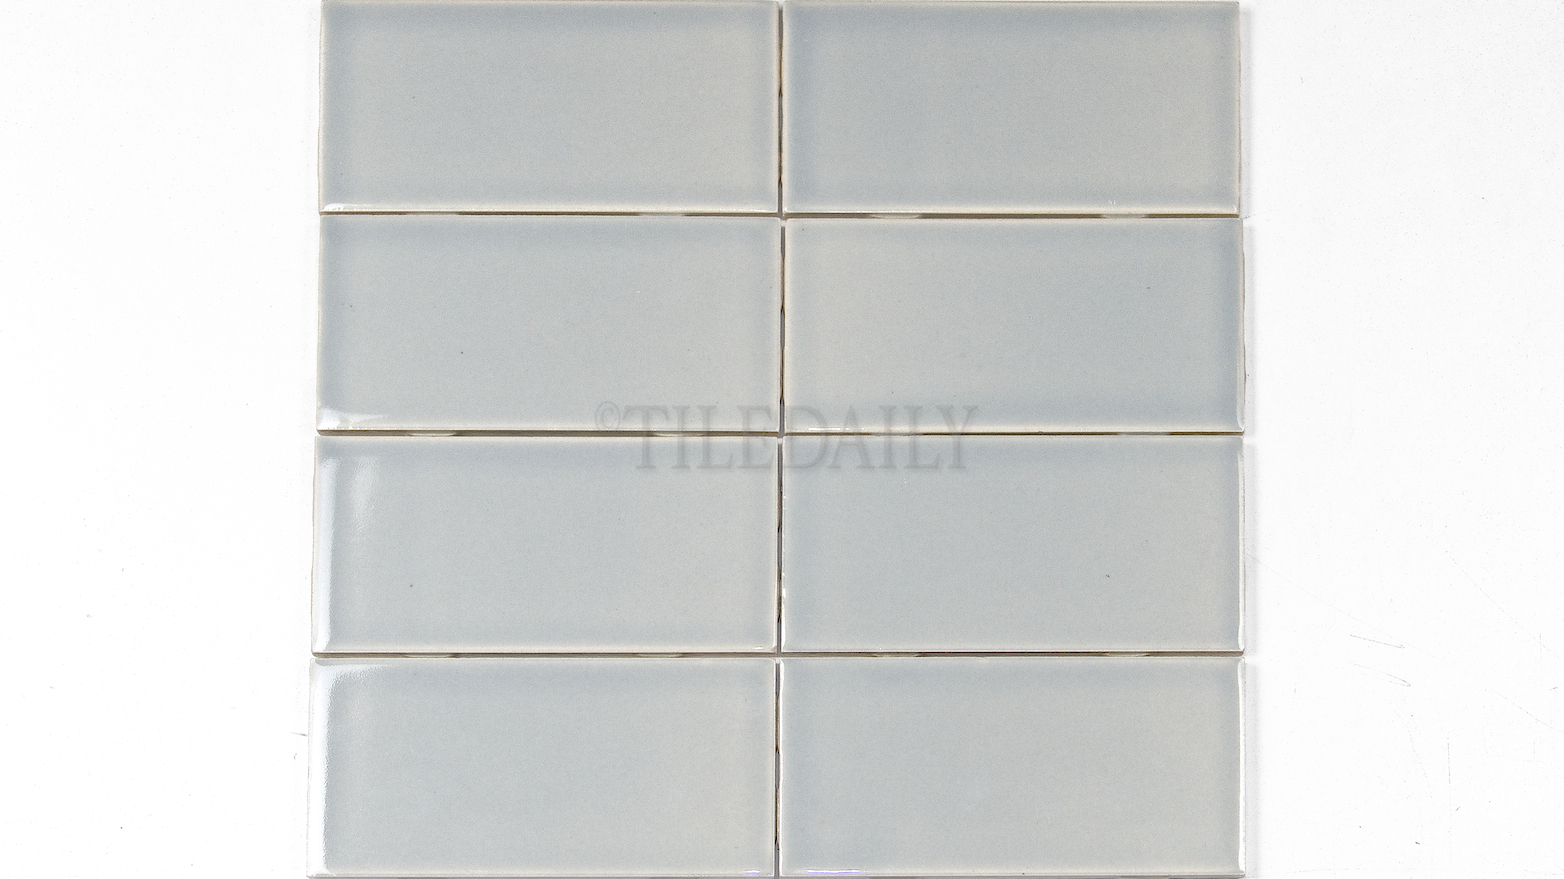 Glossy tiledaily ceramic subway tile ice bluetiledaily10p0034ib 3x6 ceramic subway tile ice bluep0034ib 3x6 ceramic subway tile ice bluep0034ib 3x6 ceramic subway ppazfo